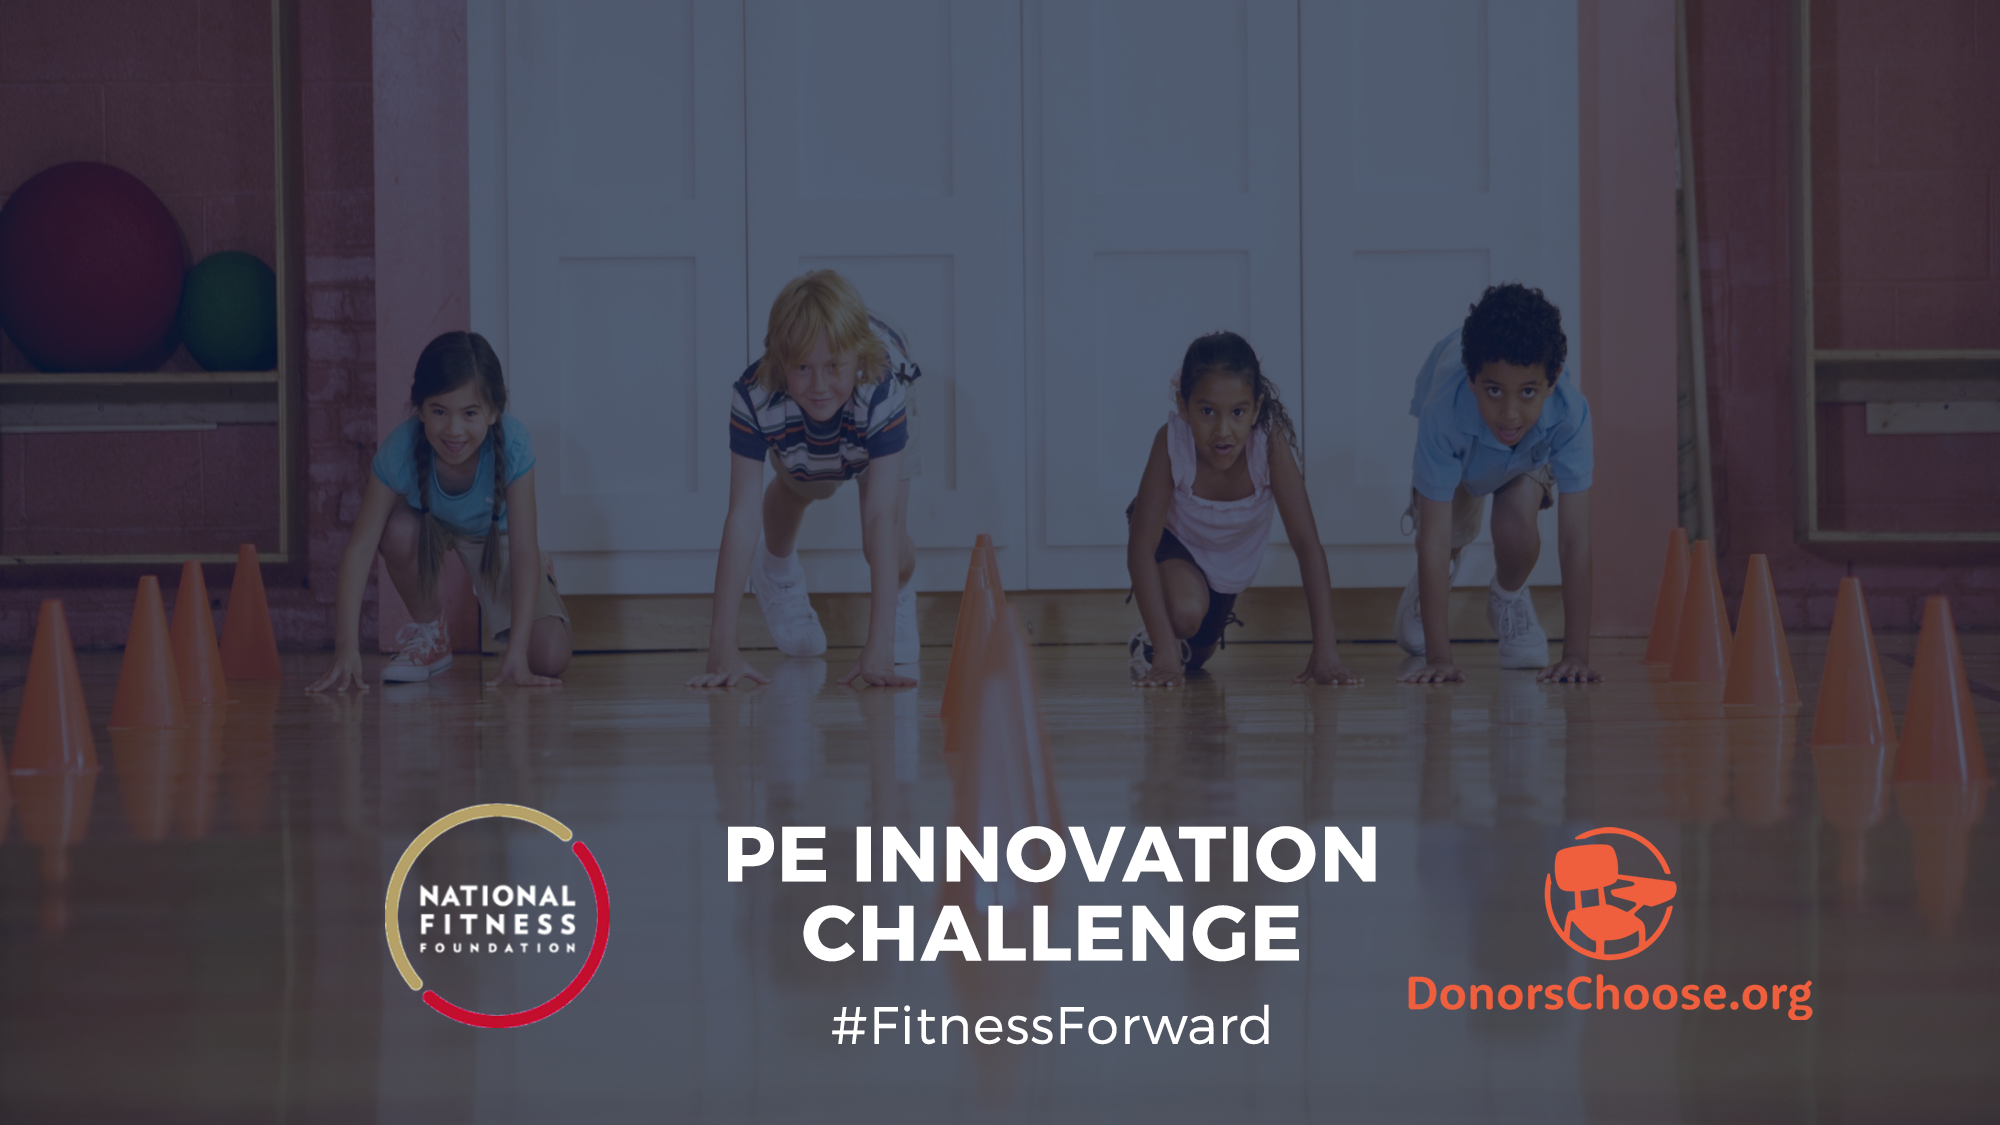 National Fitness Foundation Lifts Up Hundreds of Fitness Ideas through PE Innovation Challenge